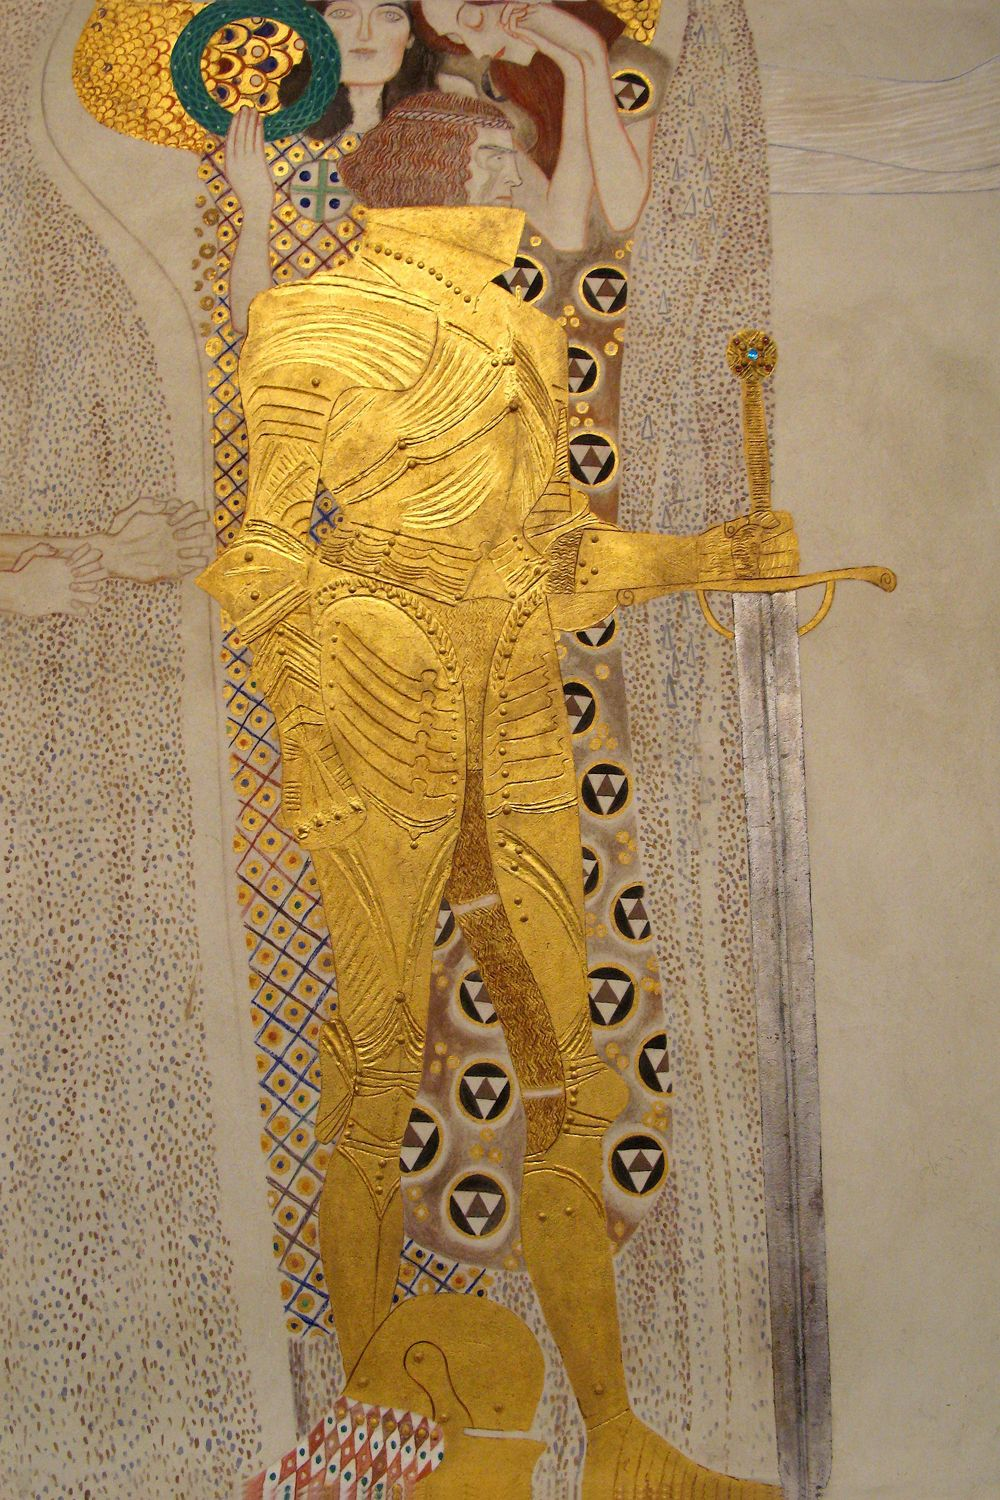 Detail Of The Knight Beethoven Frieze 1902 Ar Gustav Klimt Icanvas In 2021 Klimt Art Gustav Klimt Gustav Klimt Art